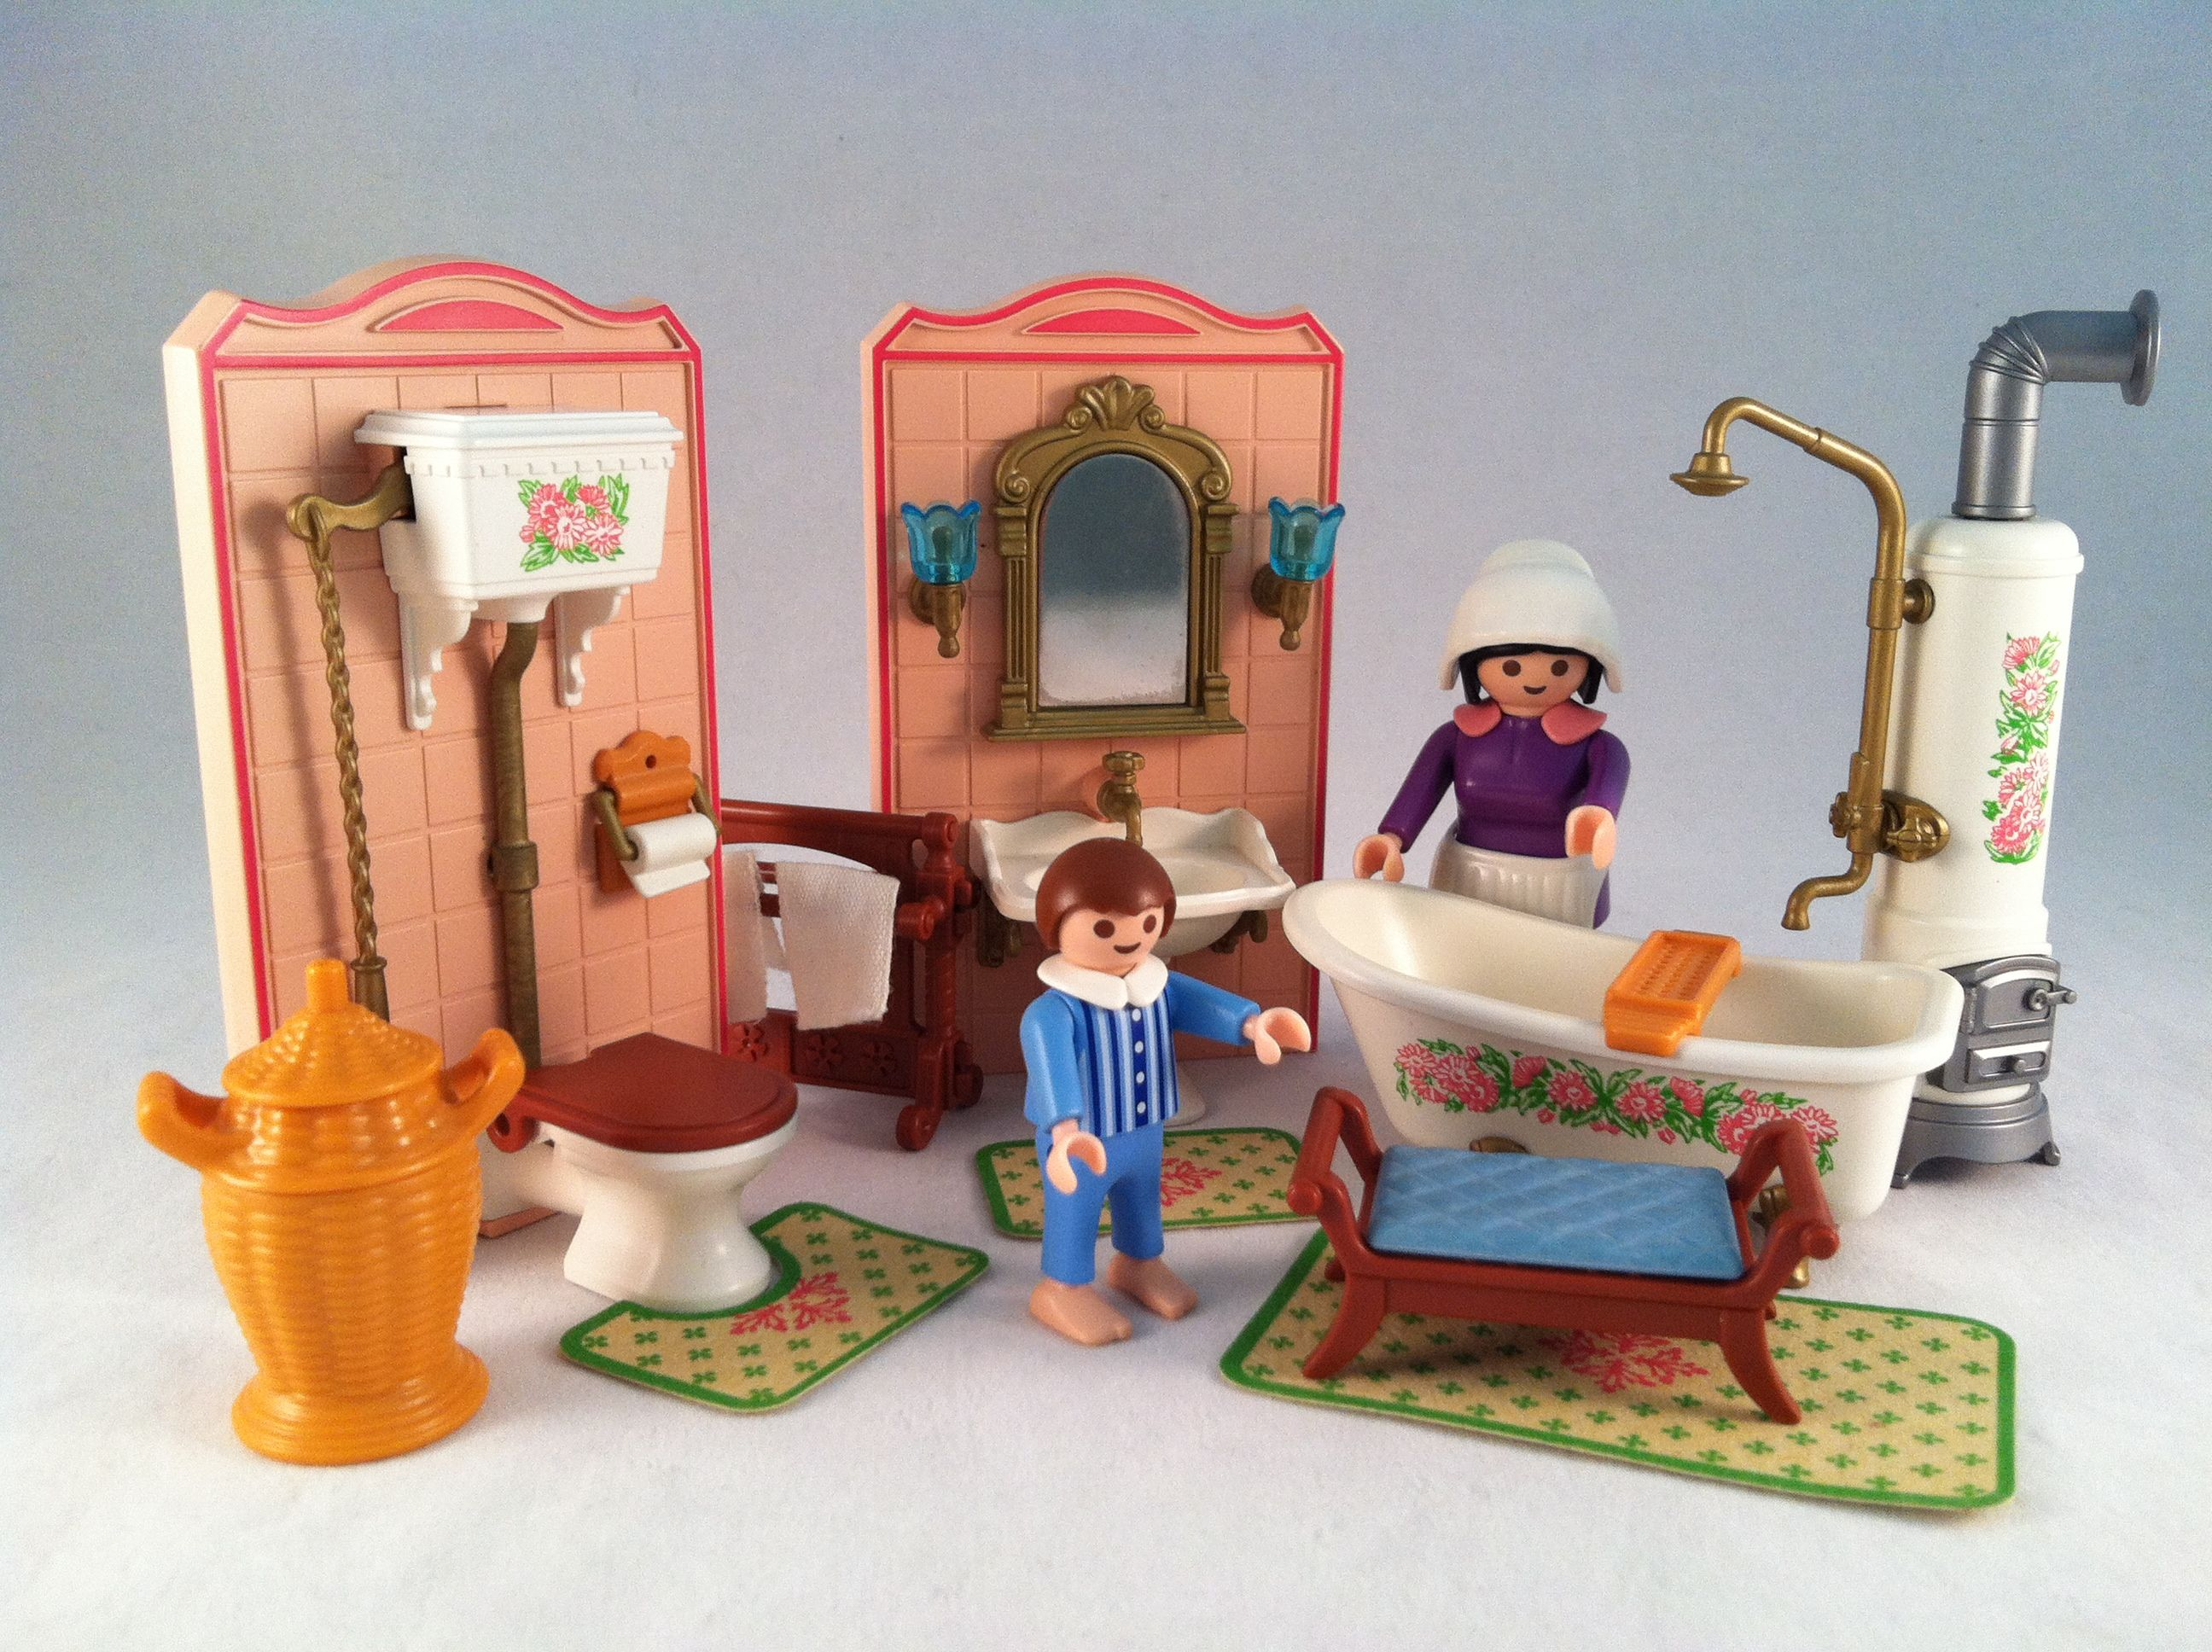 Playmobil Dollhaus Badezimmer Playmobil Victorian Mansion Bathroom Vintage Early 1990 S Set